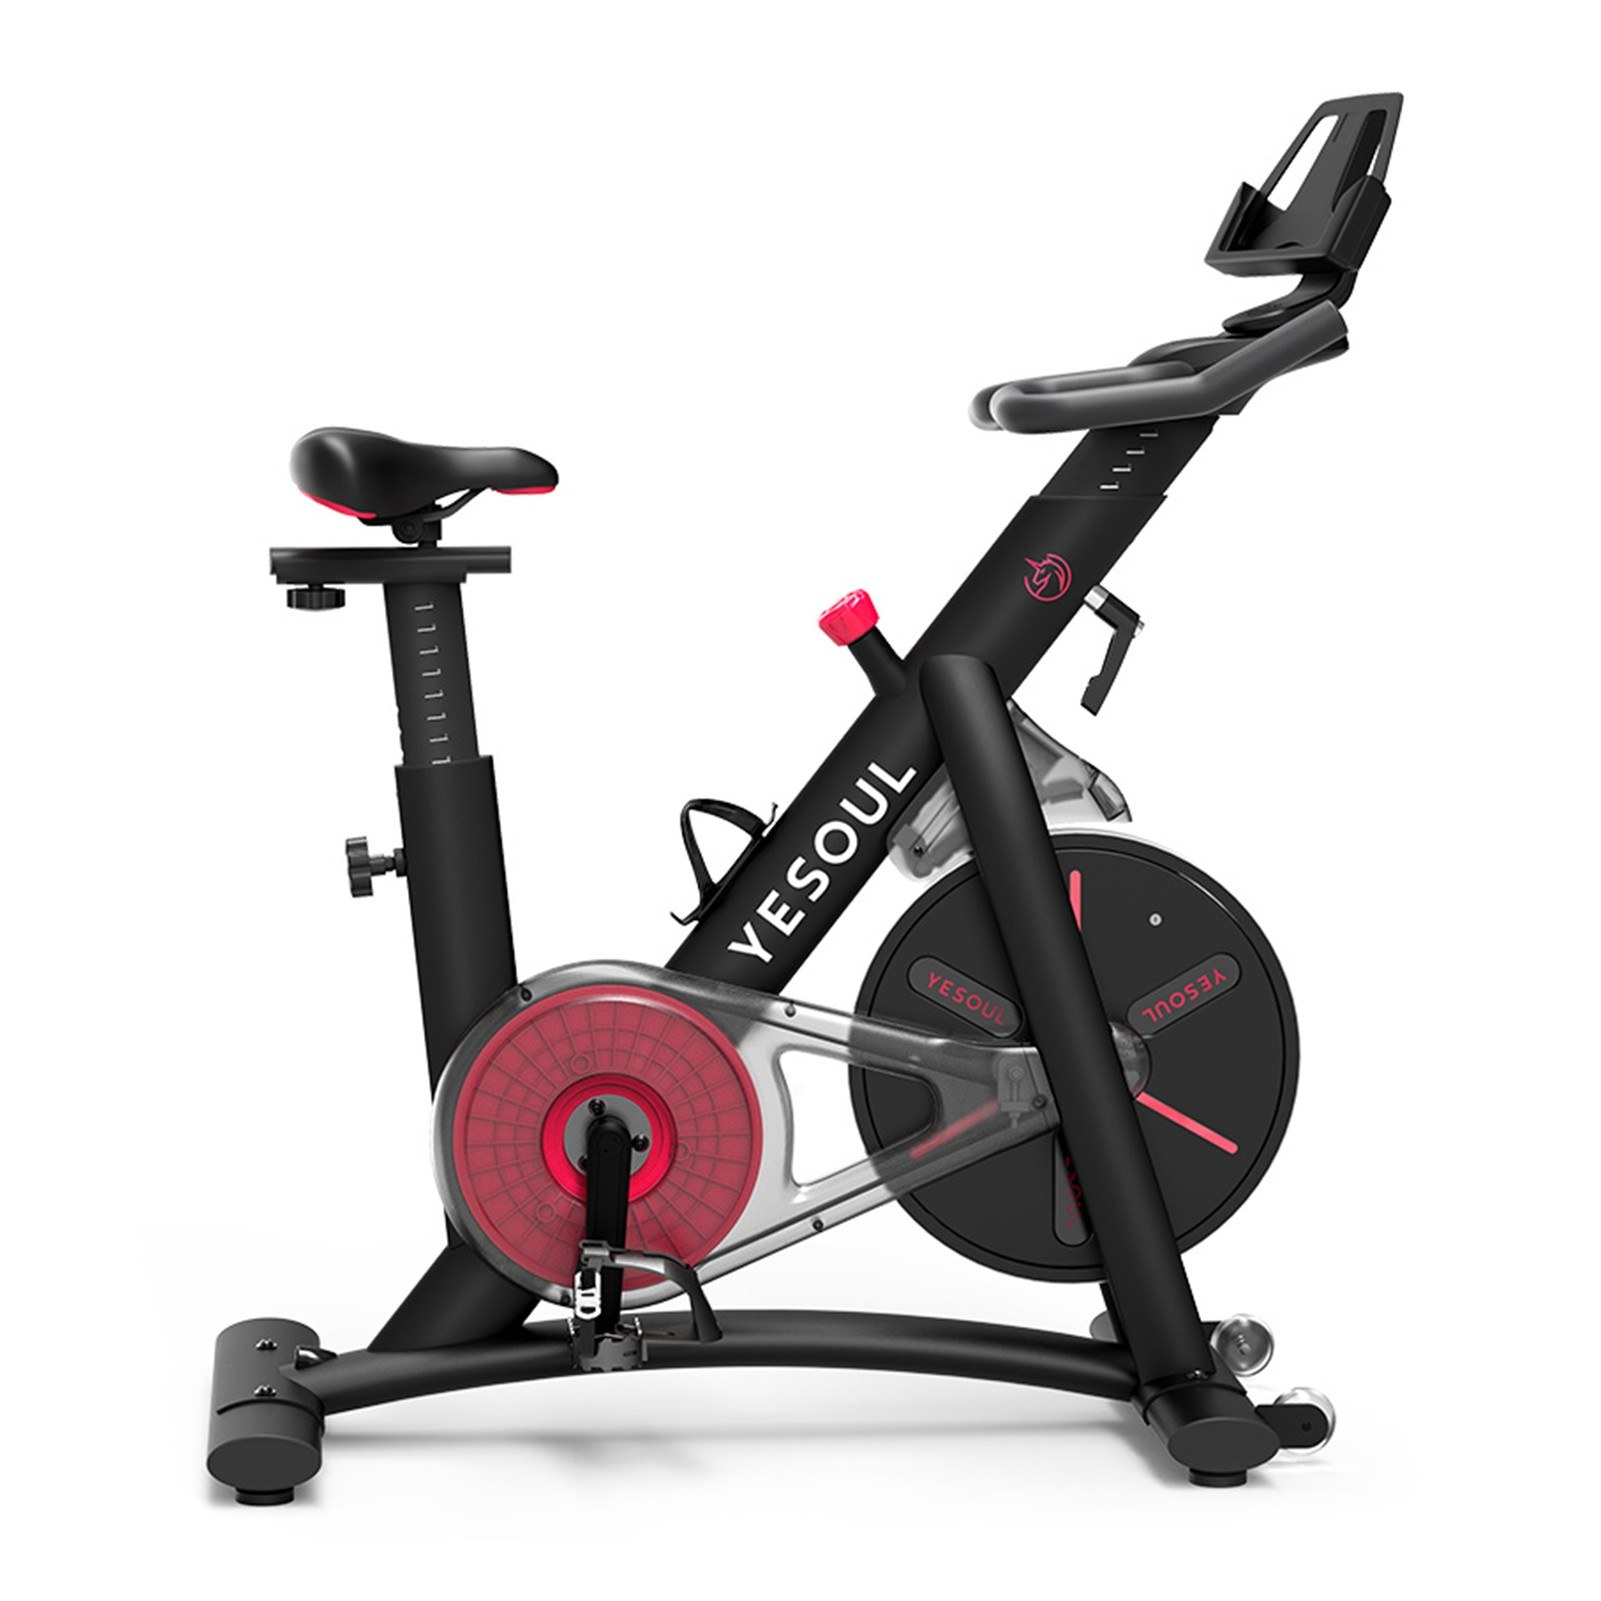 Cafago - 50% OFF YESOUL S3 Indoor Cycling Stationary Exercise Bike,free shipping+$557.65